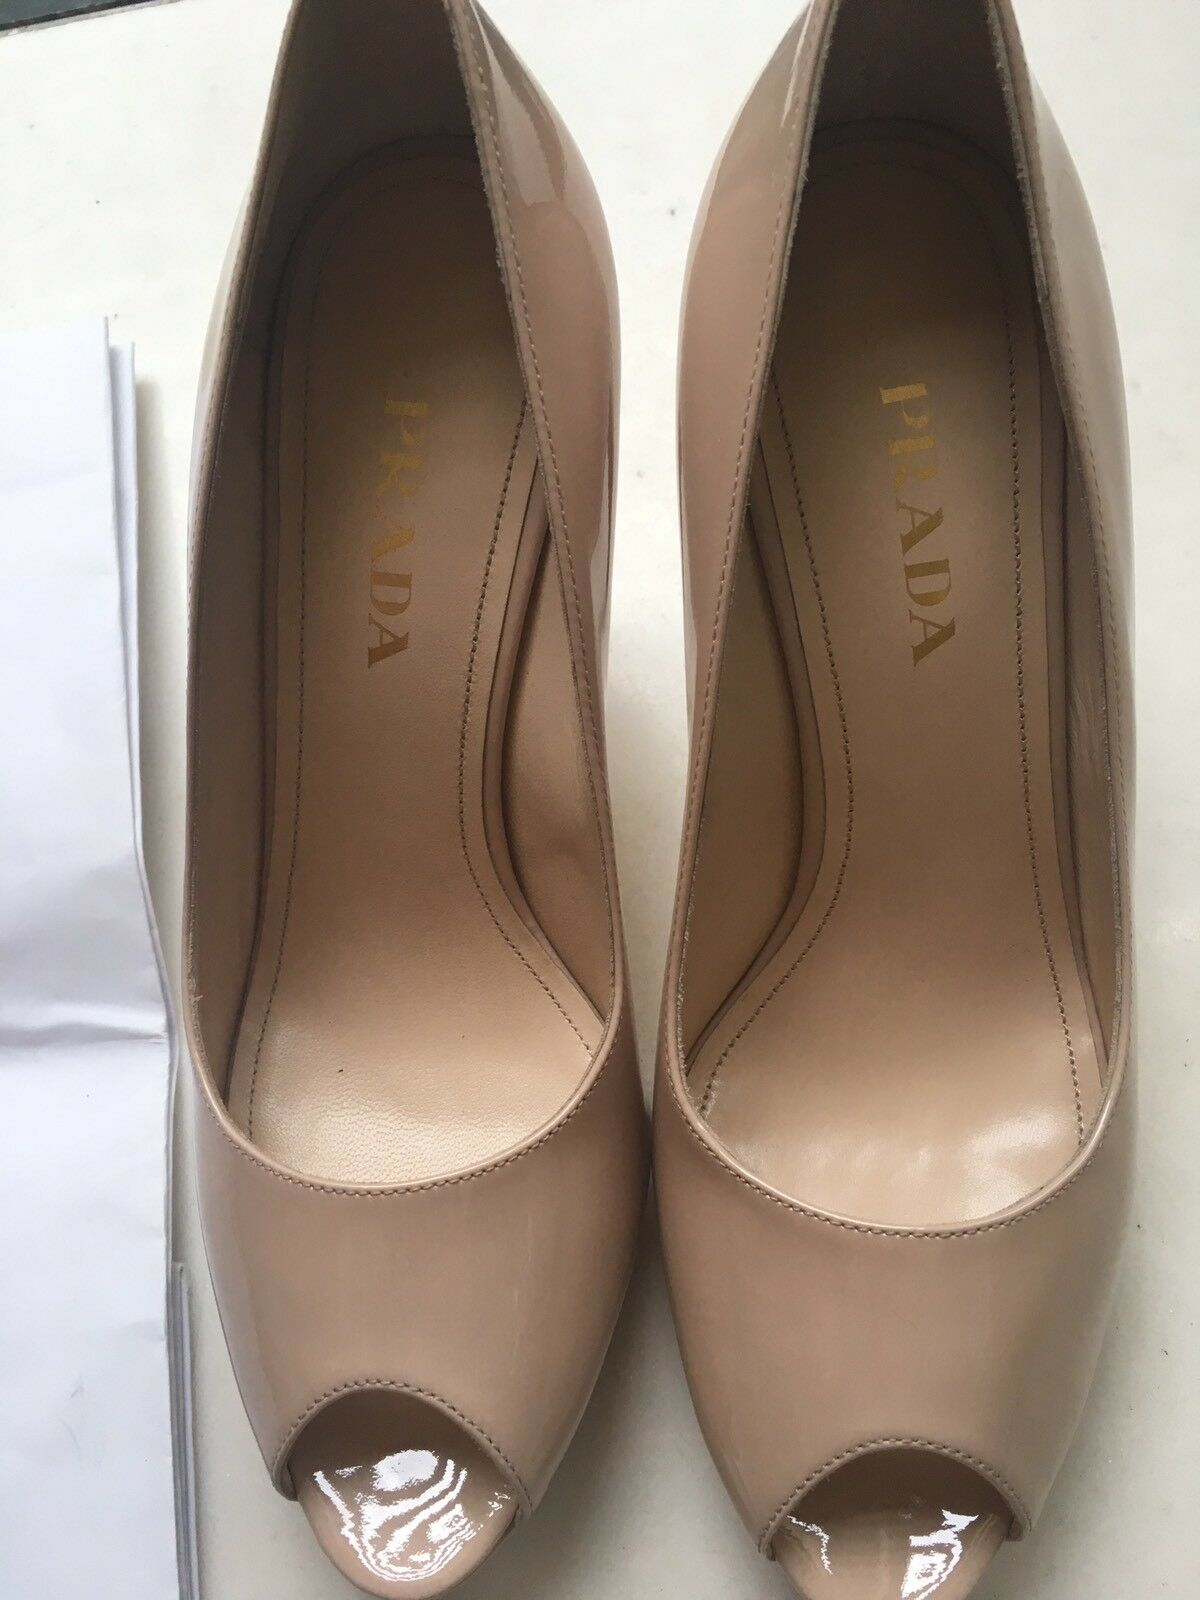 Prada brand new open toe patented heals leather pump heals patented 38.5 or 7.5 size d4d782